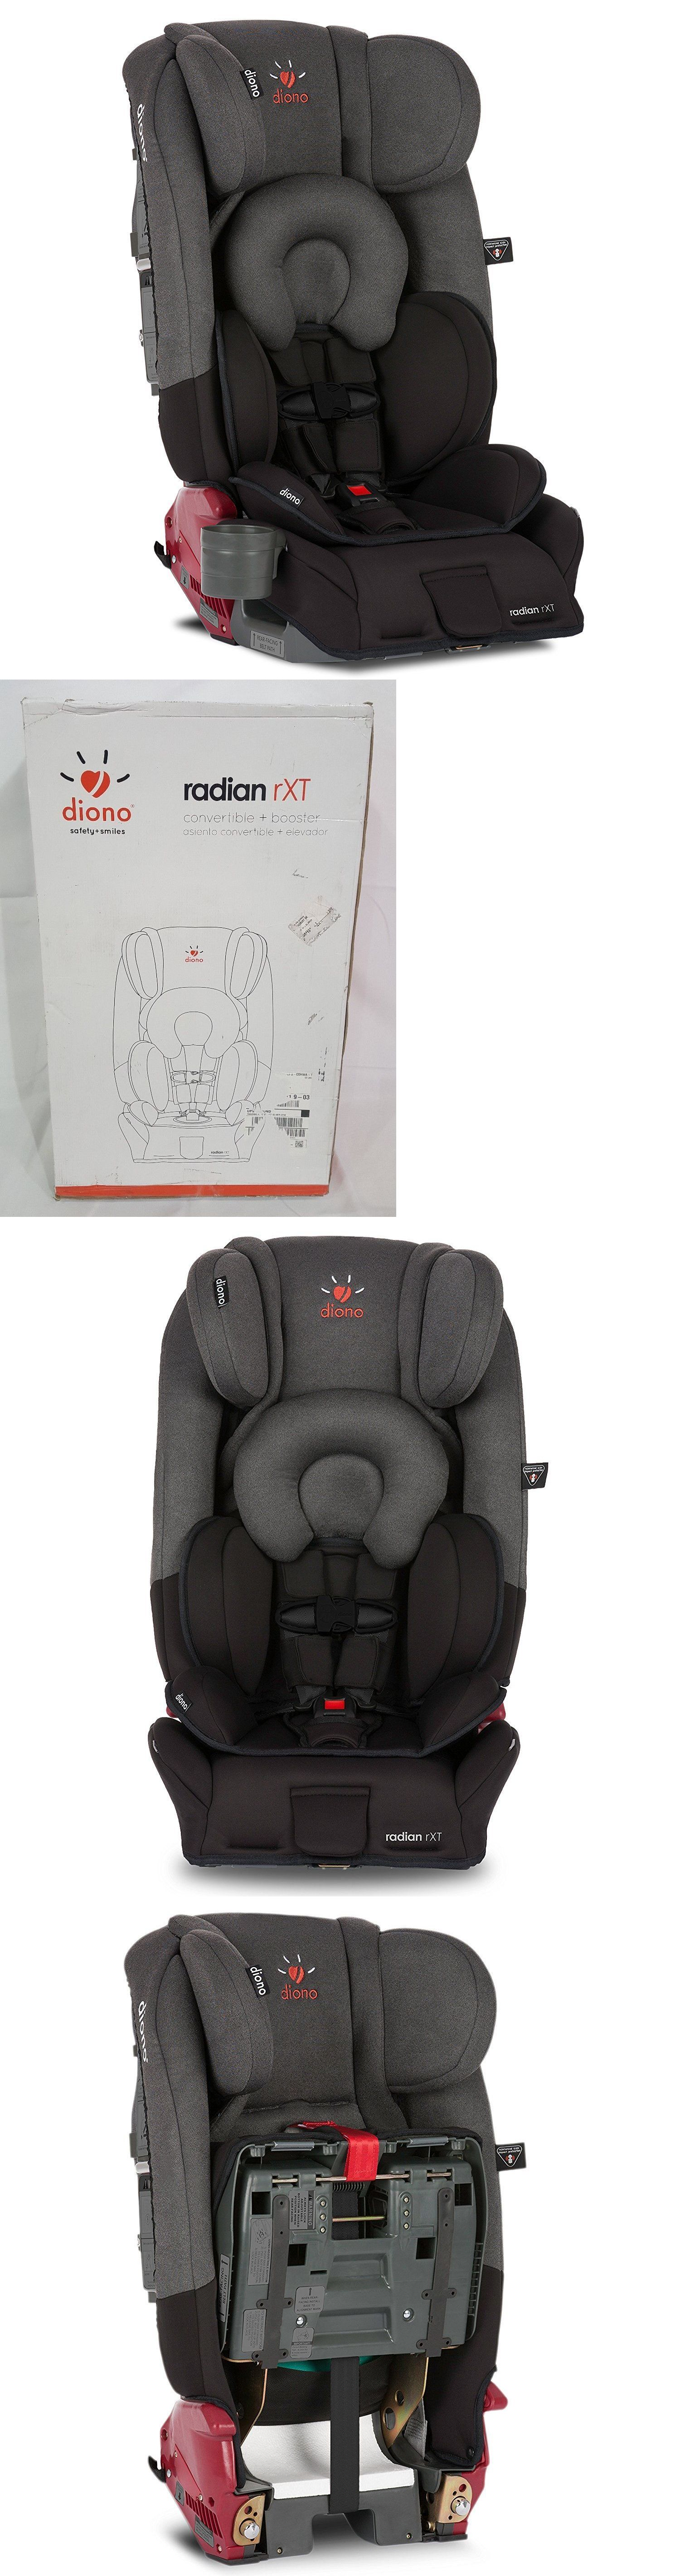 Booster to 80lbs Diono Radian Rxt 3 In 1 Convertible Car Seat